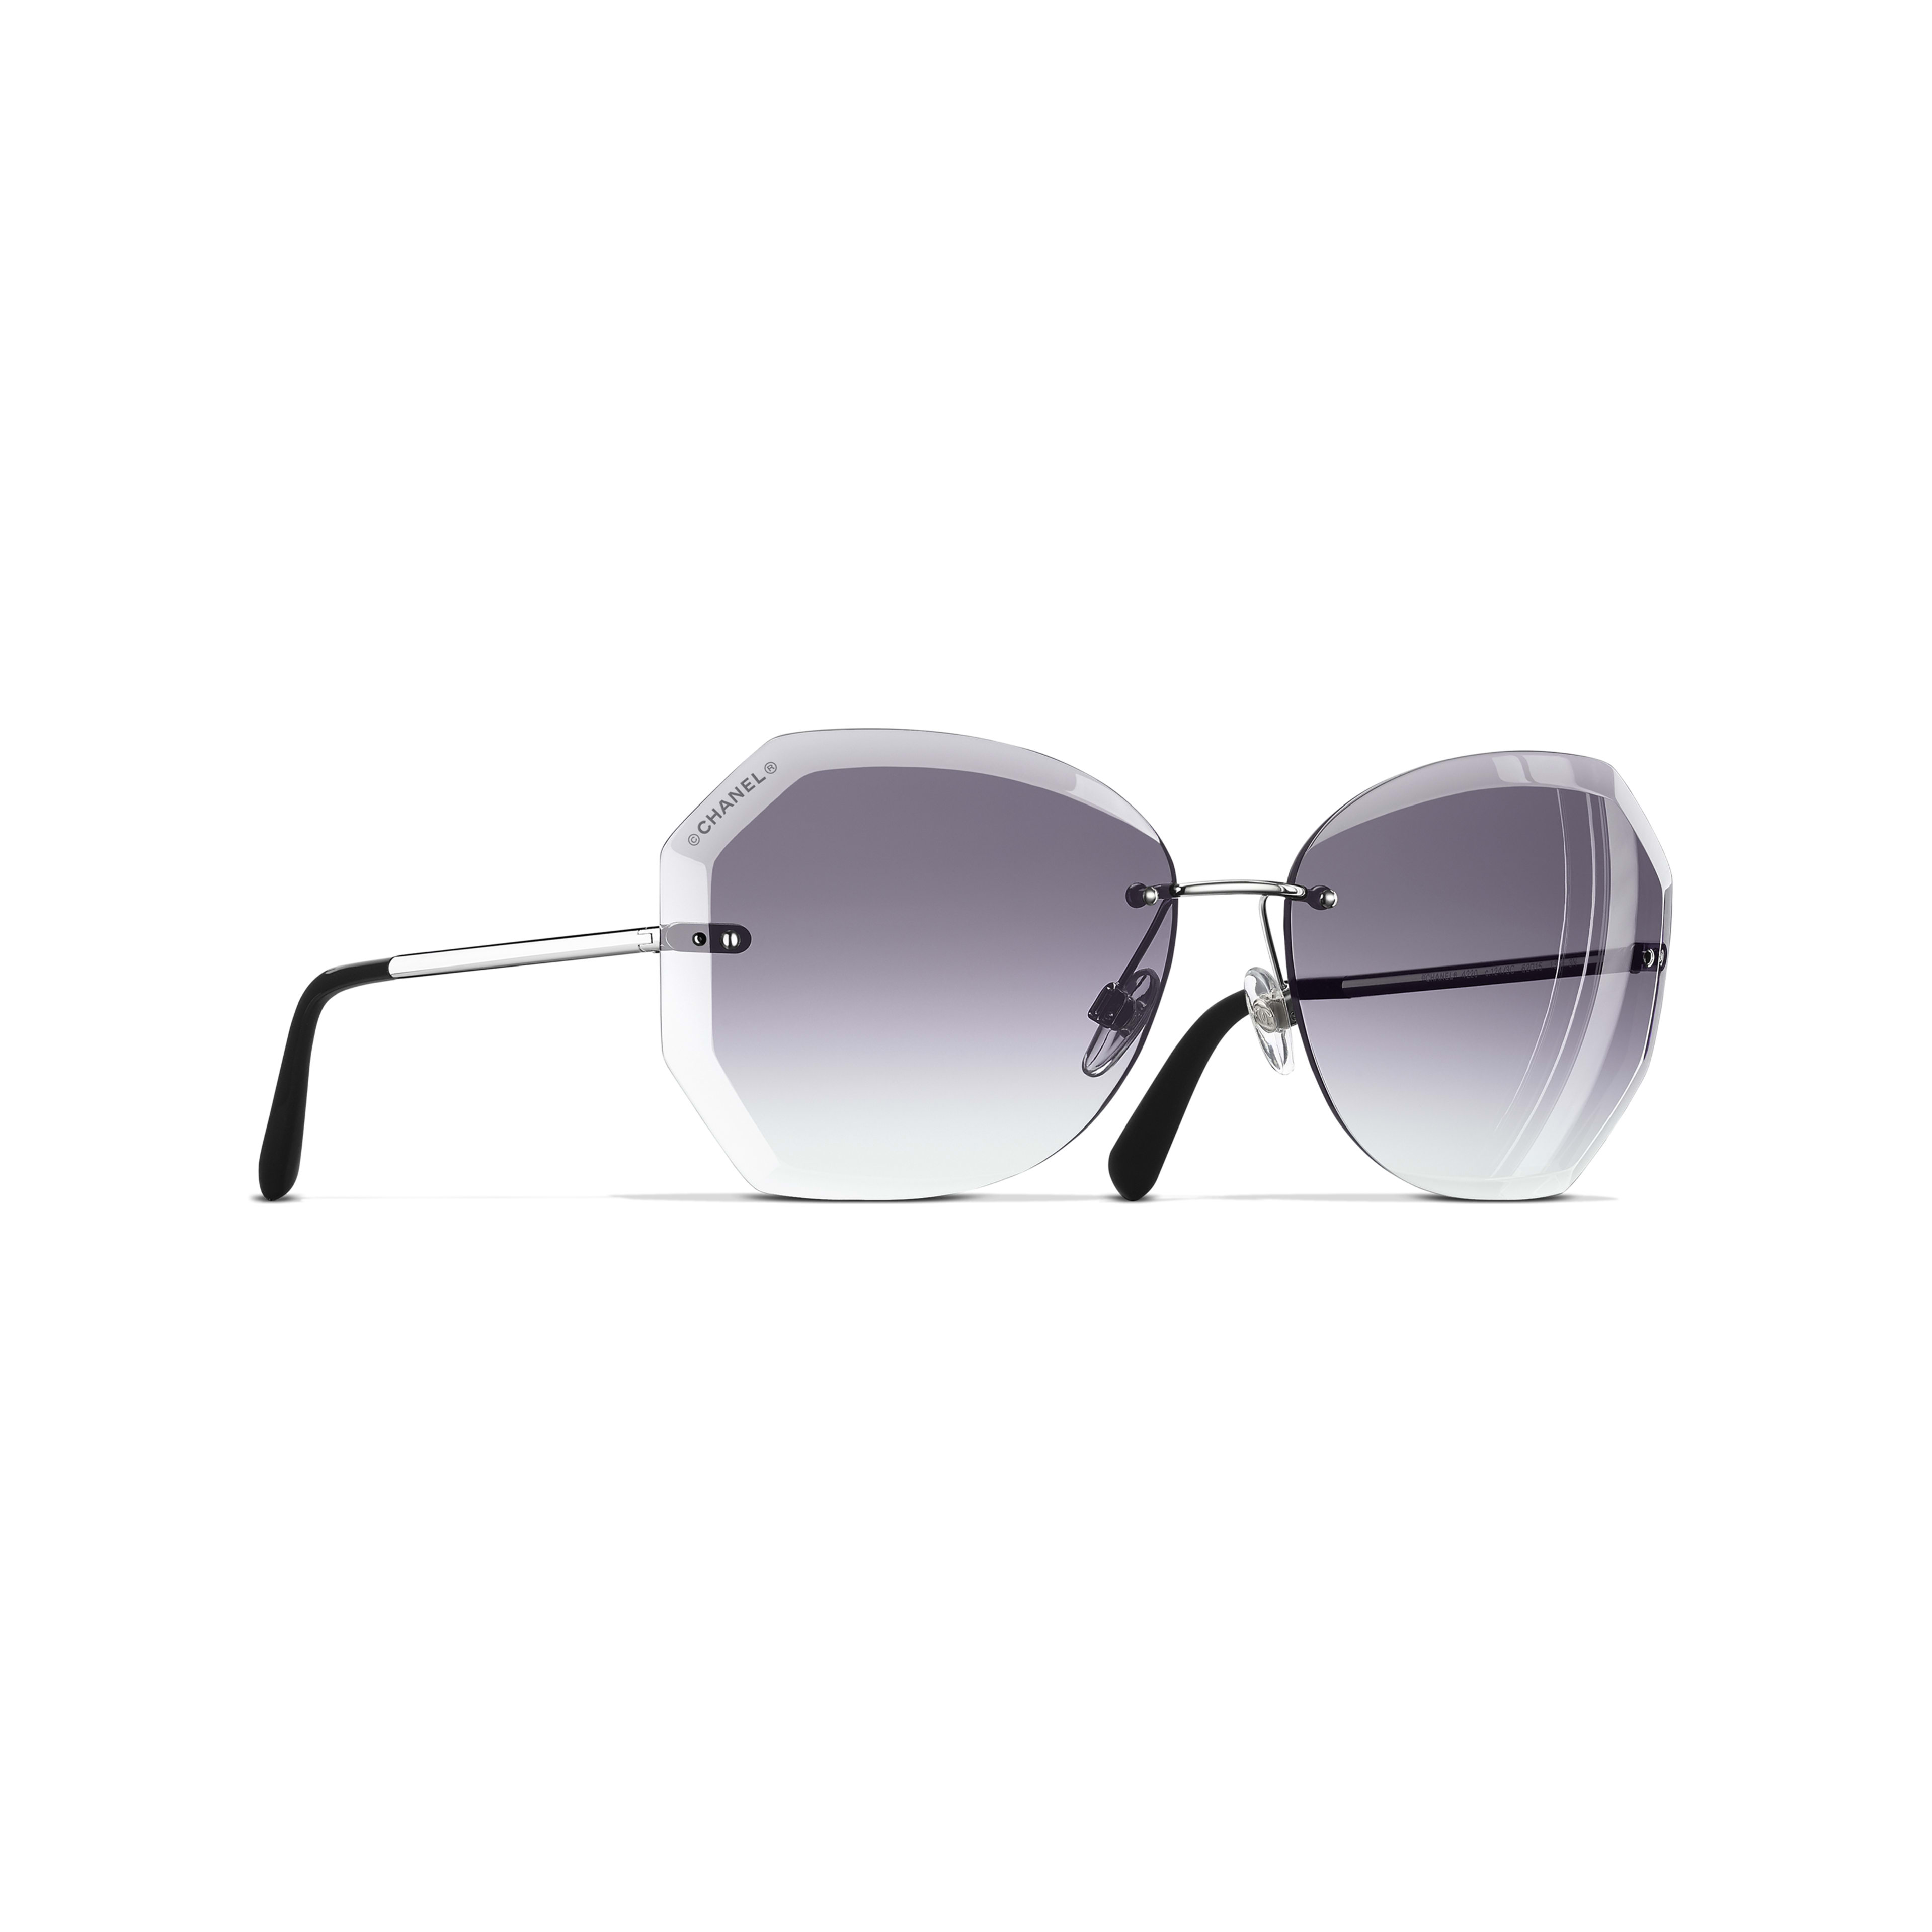 Round Sunglasses - Silver & Grey - Metal - Default view - see full sized version